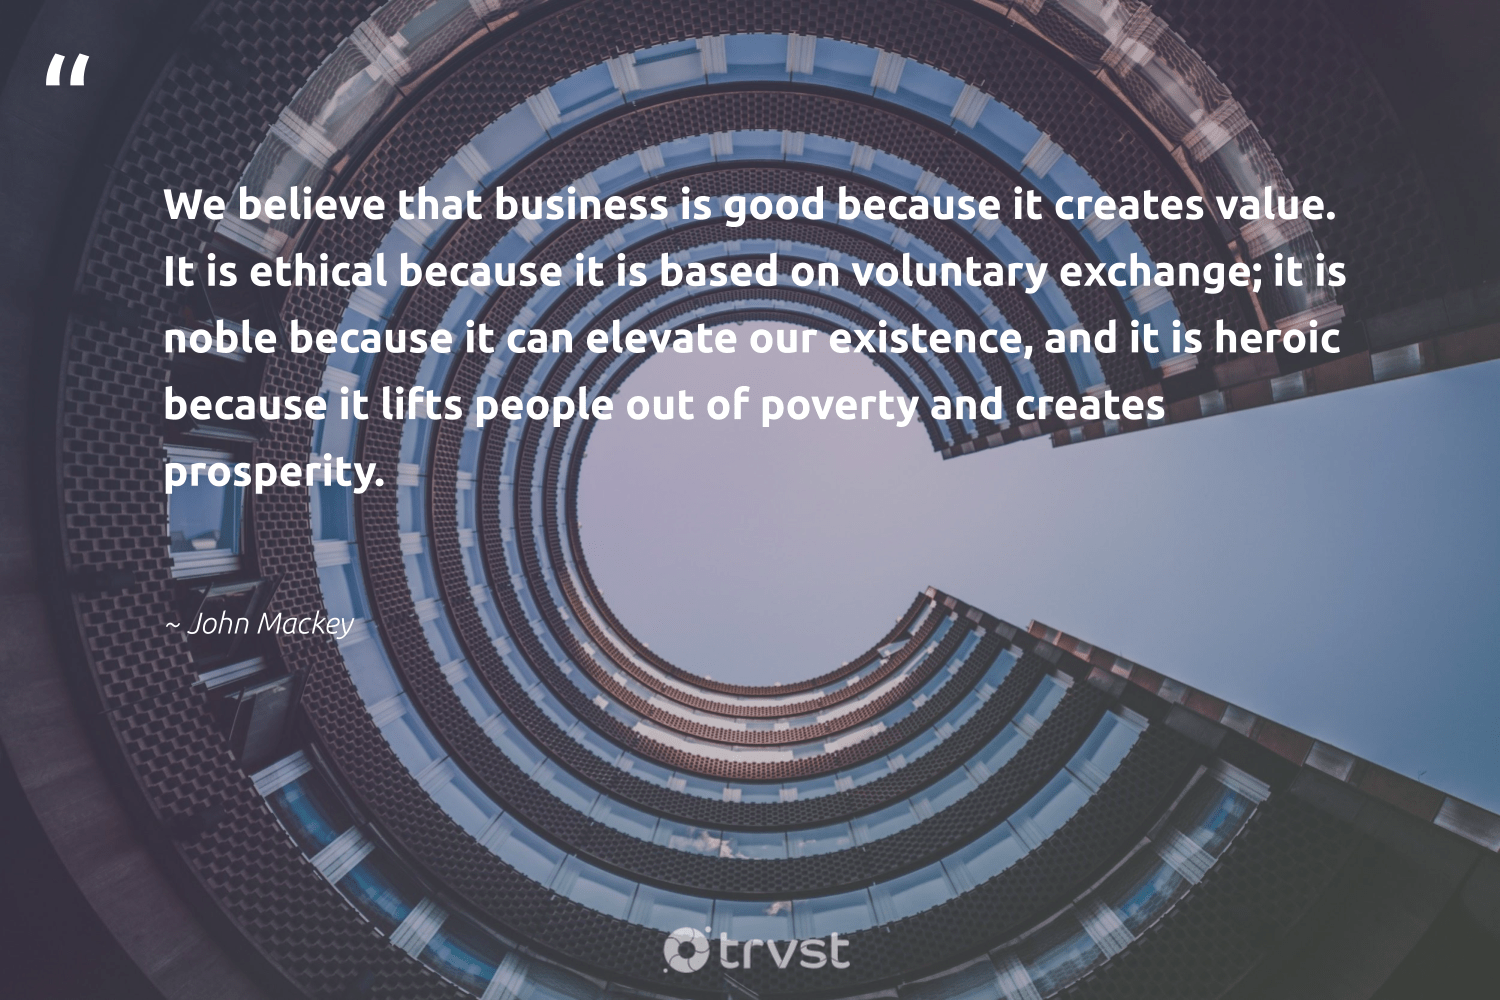 """""""We believe that business is good because it creates value. It is ethical because it is based on voluntary exchange; it is noble because it can elevate our existence, and it is heroic because it lifts people out of poverty and creates prosperity.""""  - John Mackey #trvst #quotes #ethical #poverty #endpoverty #ethicalbusiness #sustainablefutures #bethechange #futurebusiness #equalrights #ecoconscious #sharedresponsibility"""